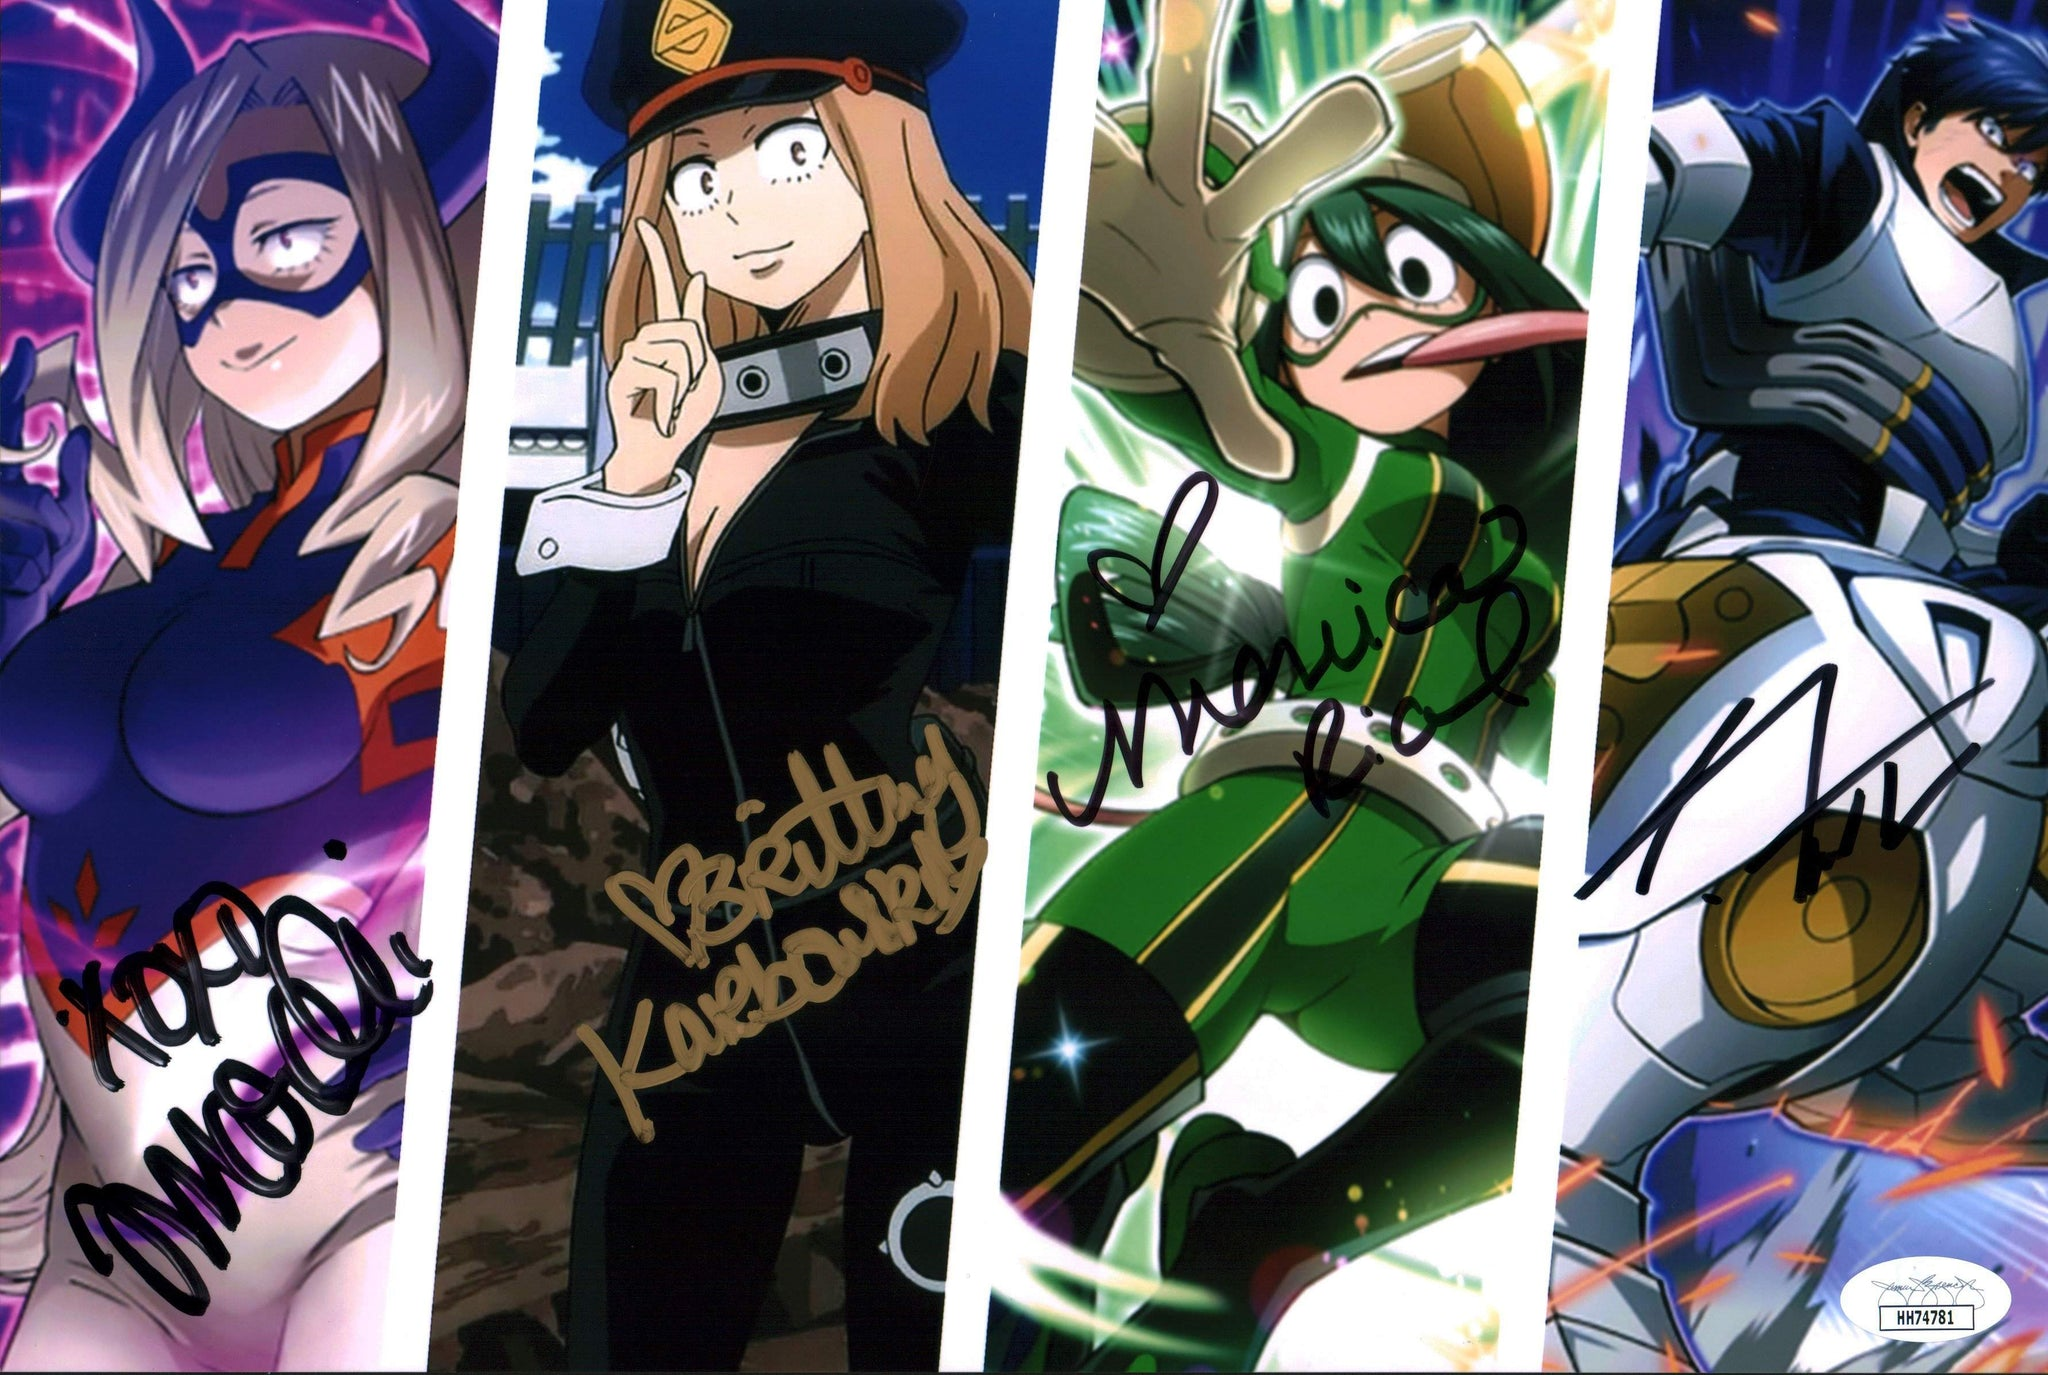 My Hero Academia 8x12 Photo Signed Marchi Karbowski Rial Tatum JSA Certified COA GalaxyCon